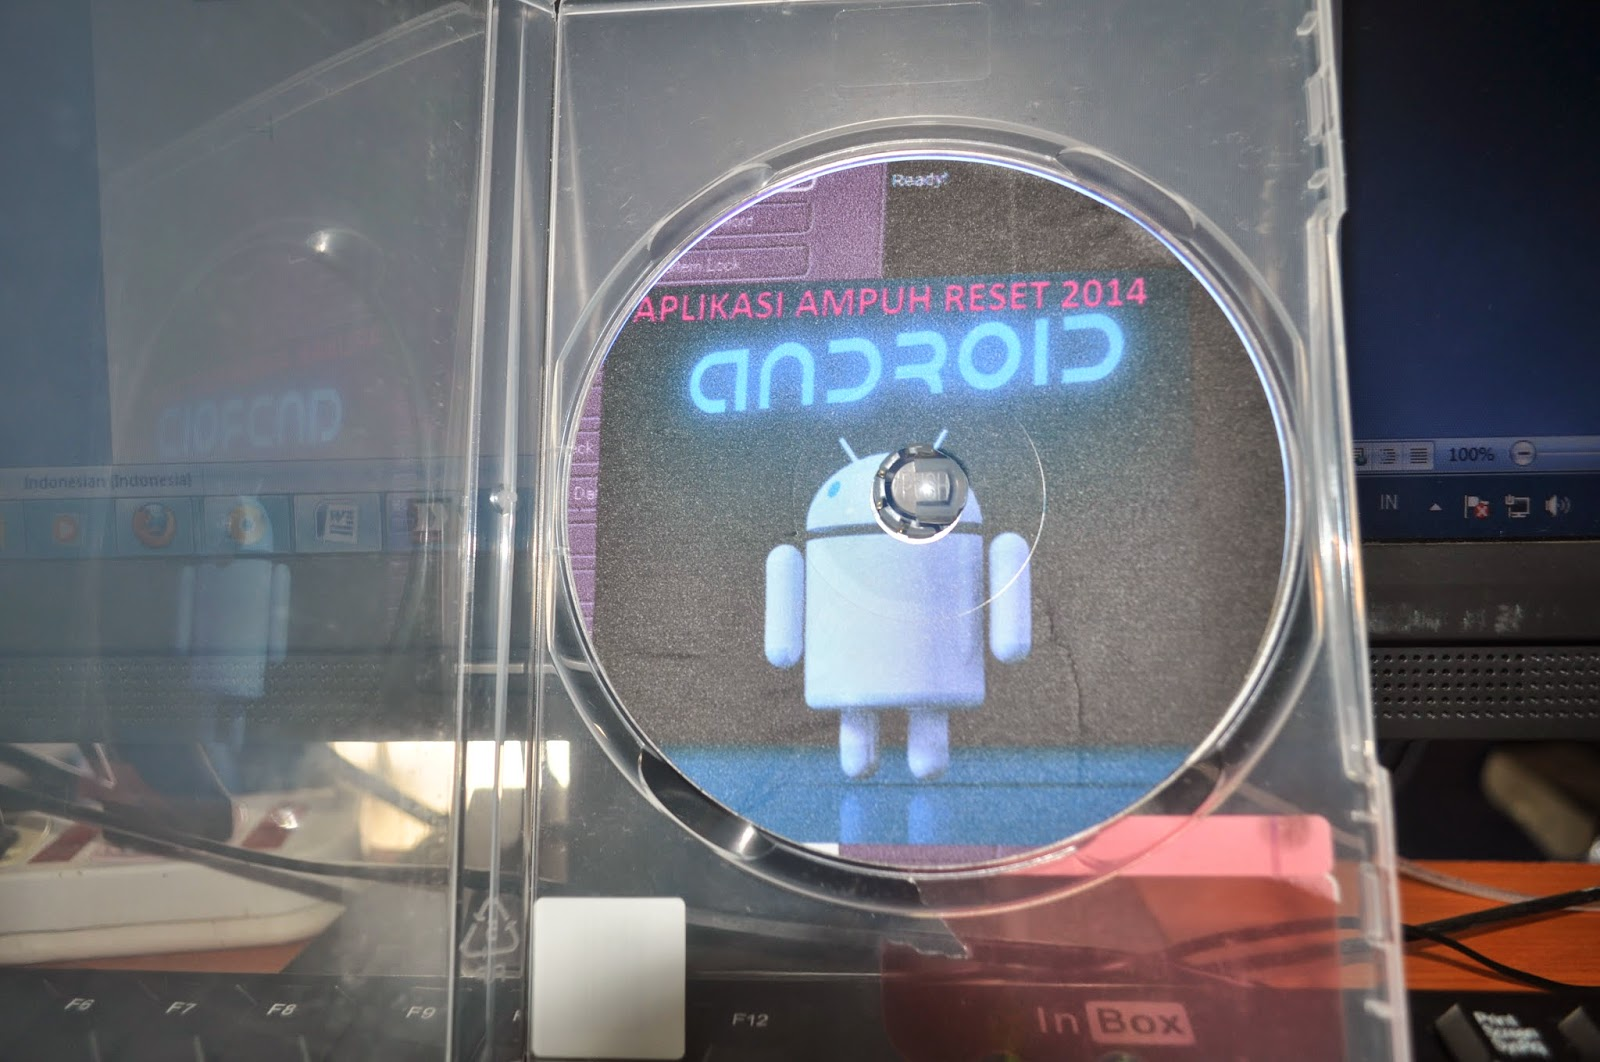 RESET GMAIL ANDROID